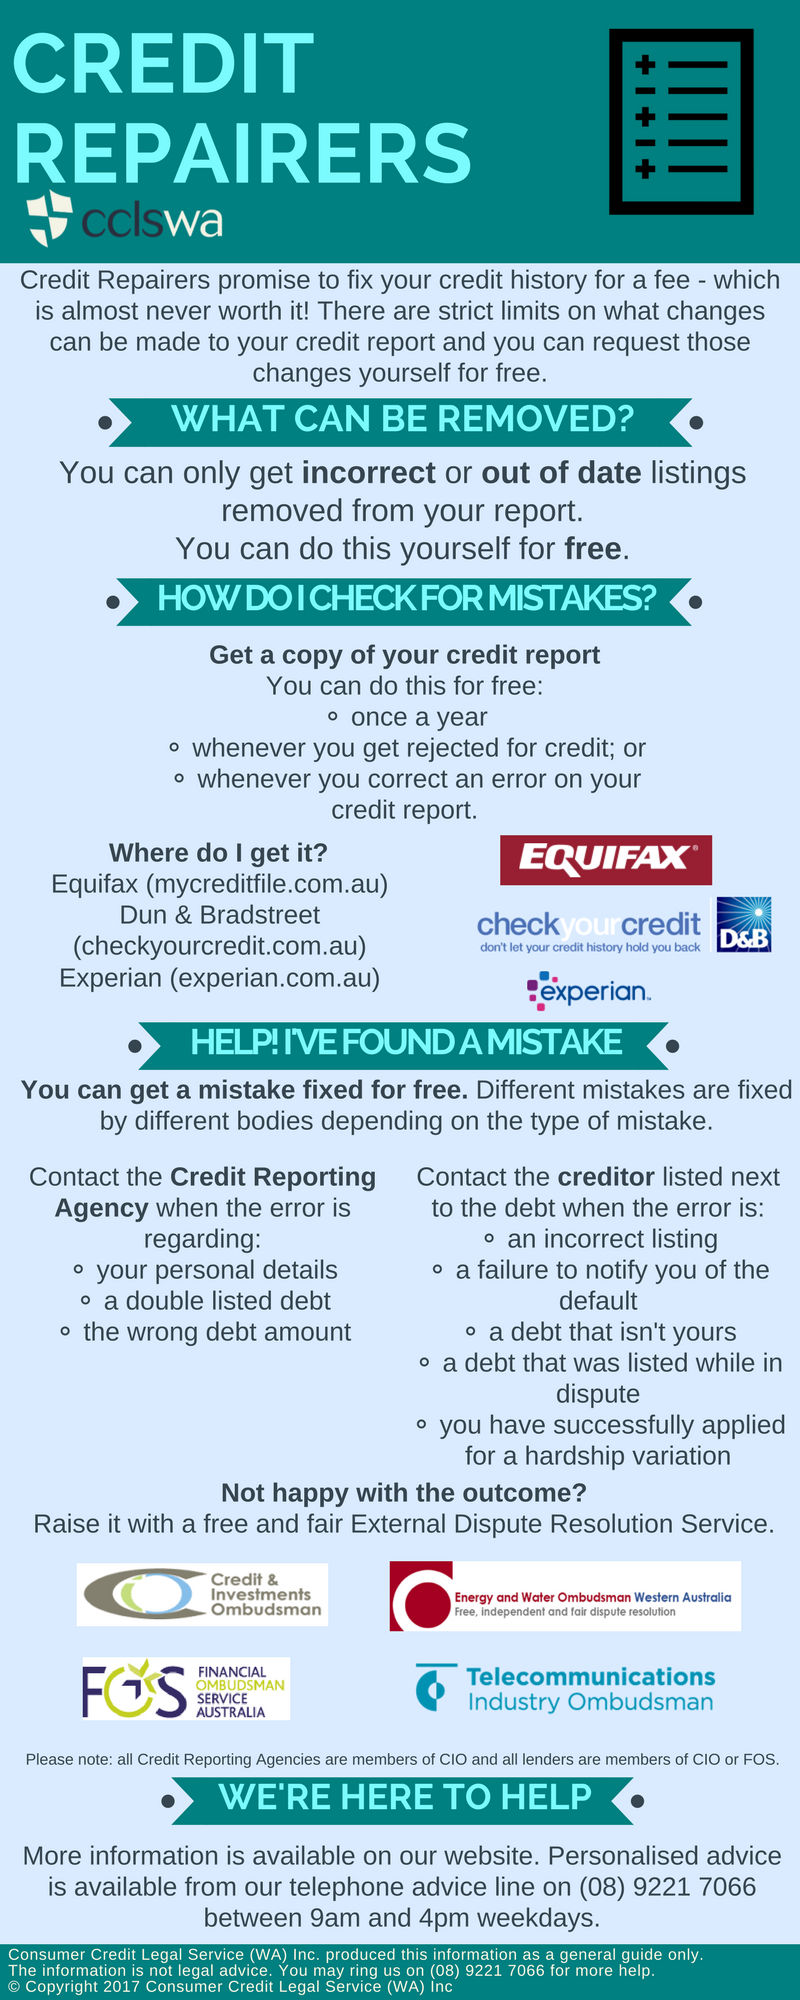 Credit Repairers Infographic